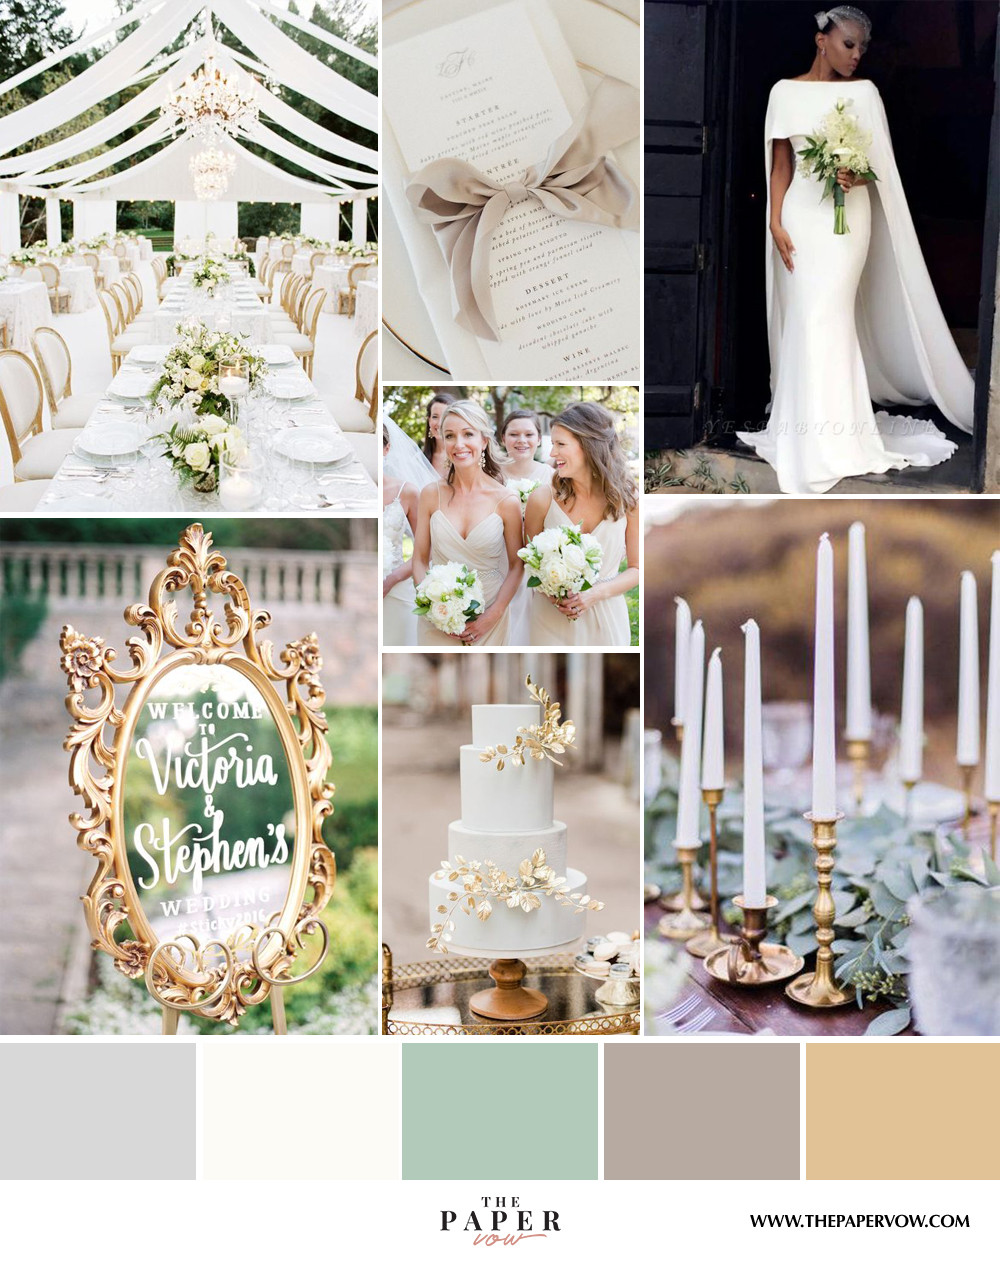 classic elegance wedding inspiration with images to create a traditional yet timeless wedding